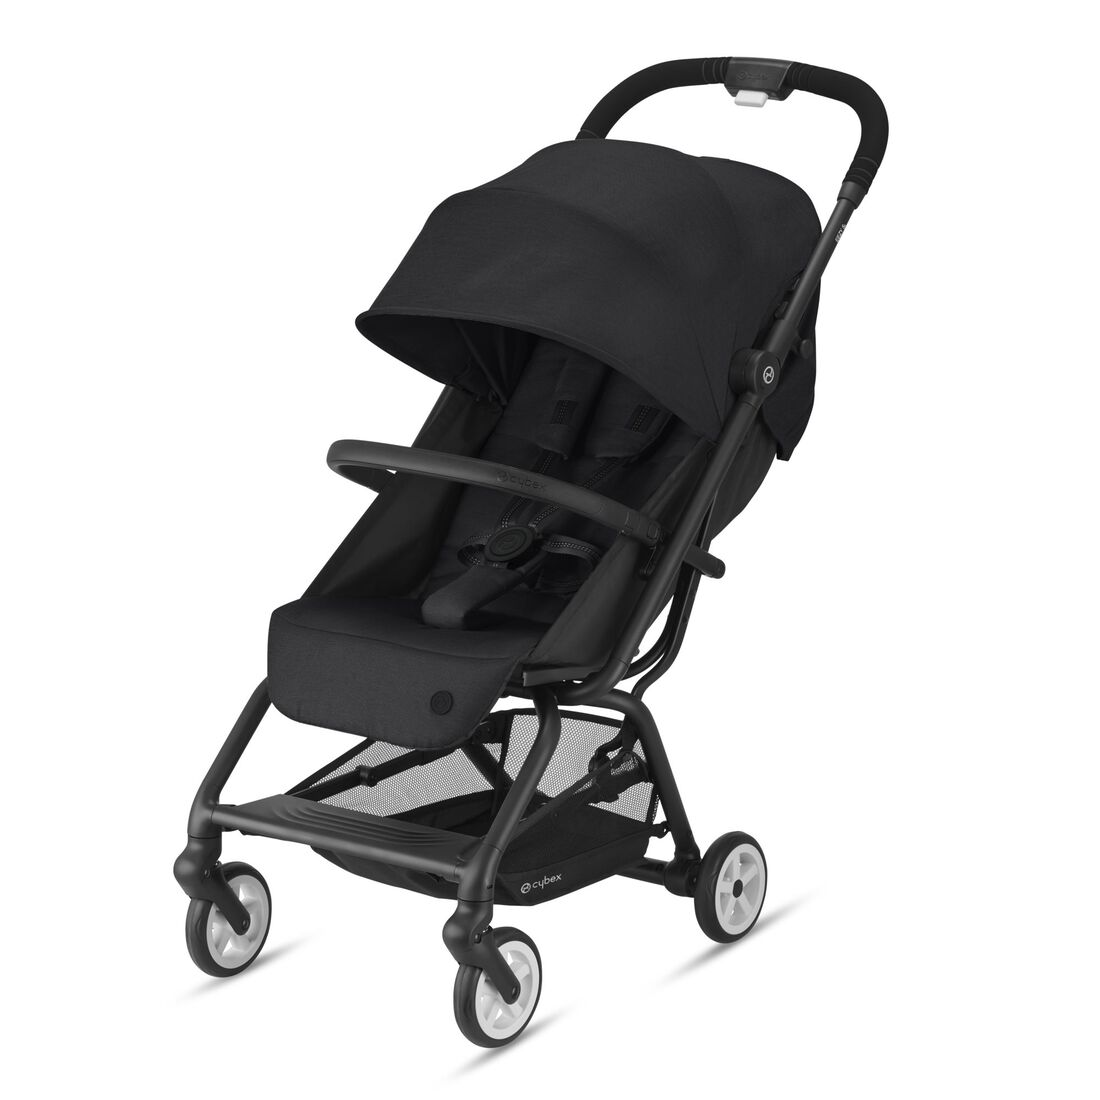 CYBEX Libelle Buggy - Smooth front-wheel suspension